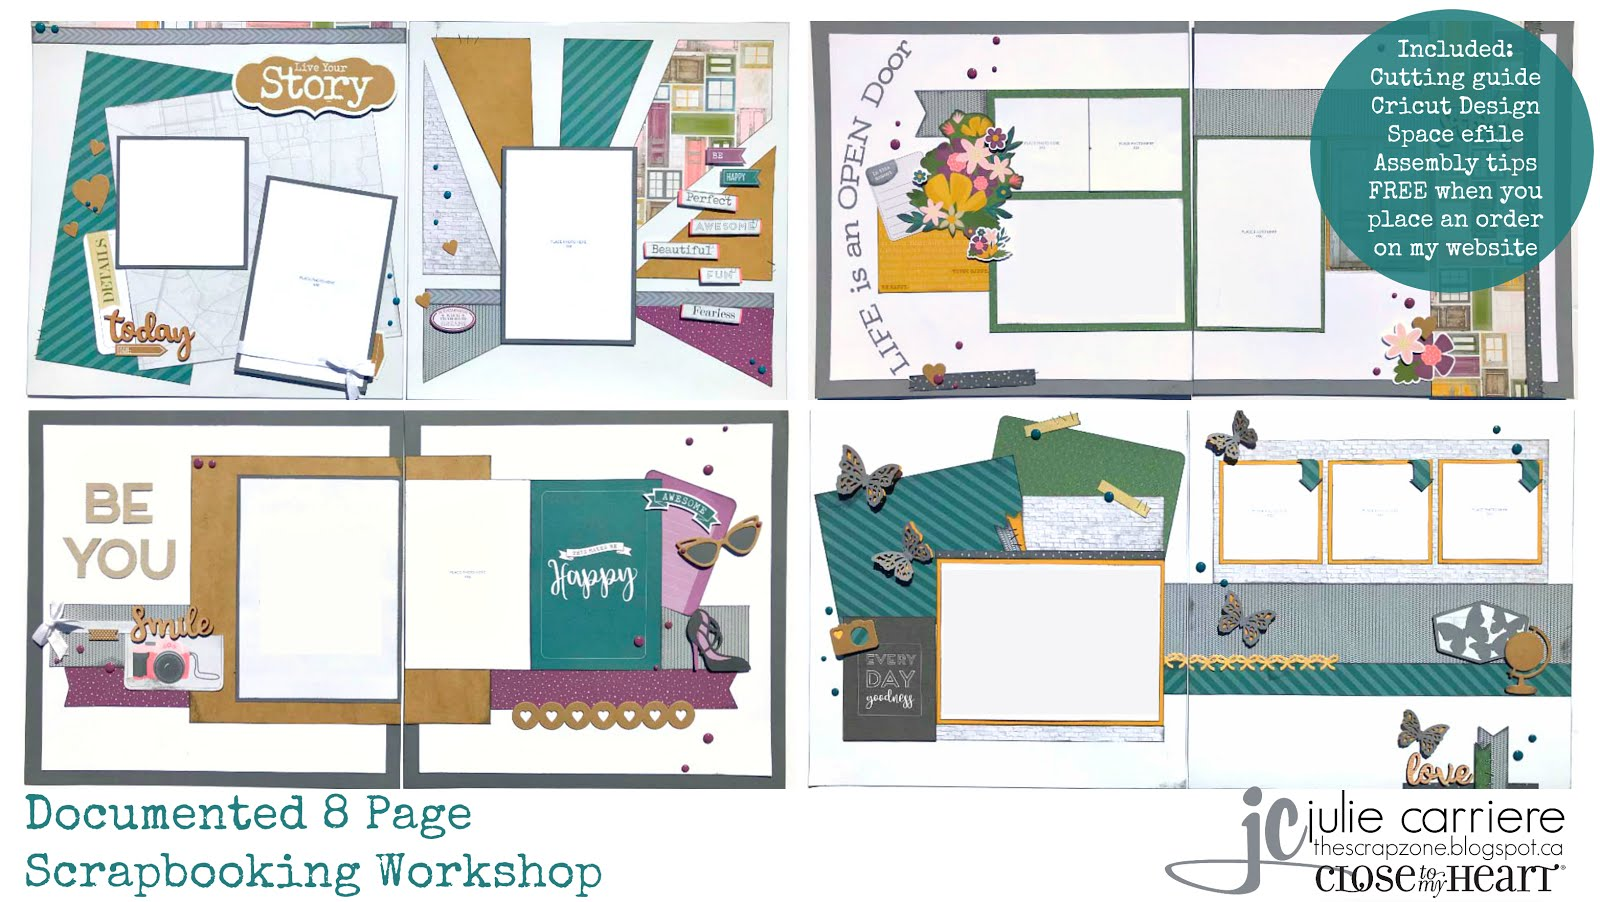 Documented scrapbooking assembly guide